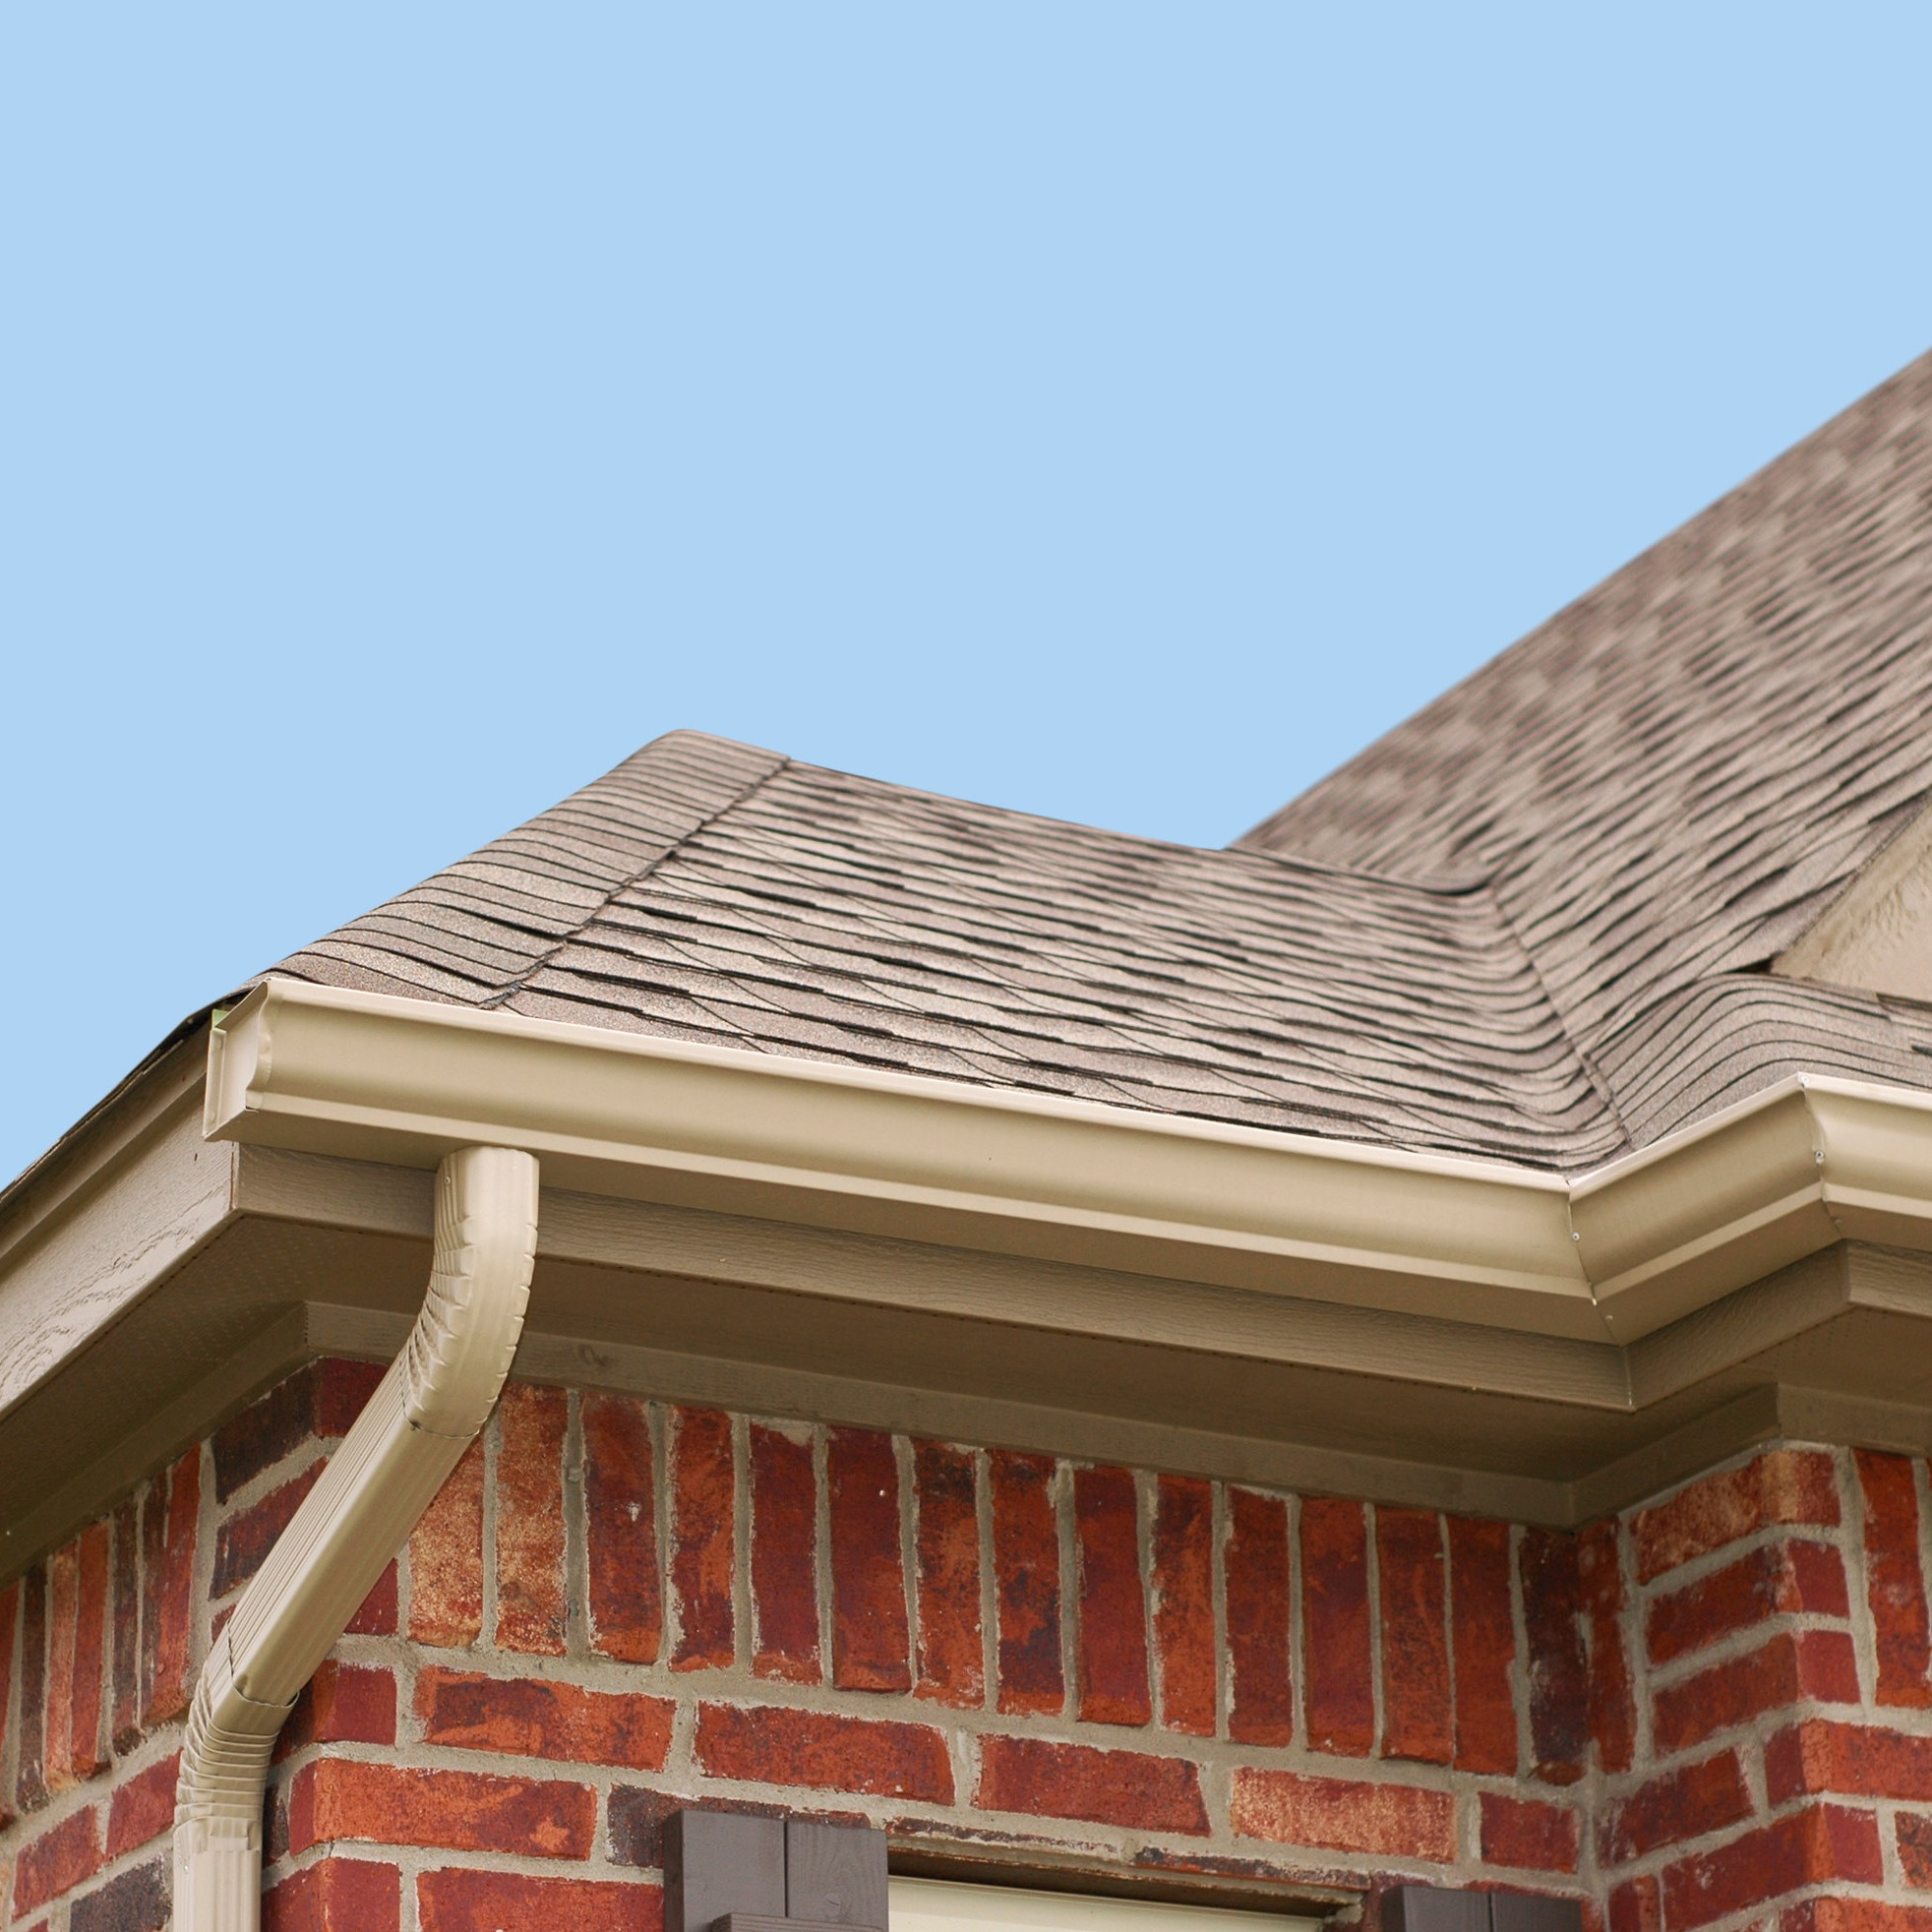 A section of a home gutter system that is in great condition.